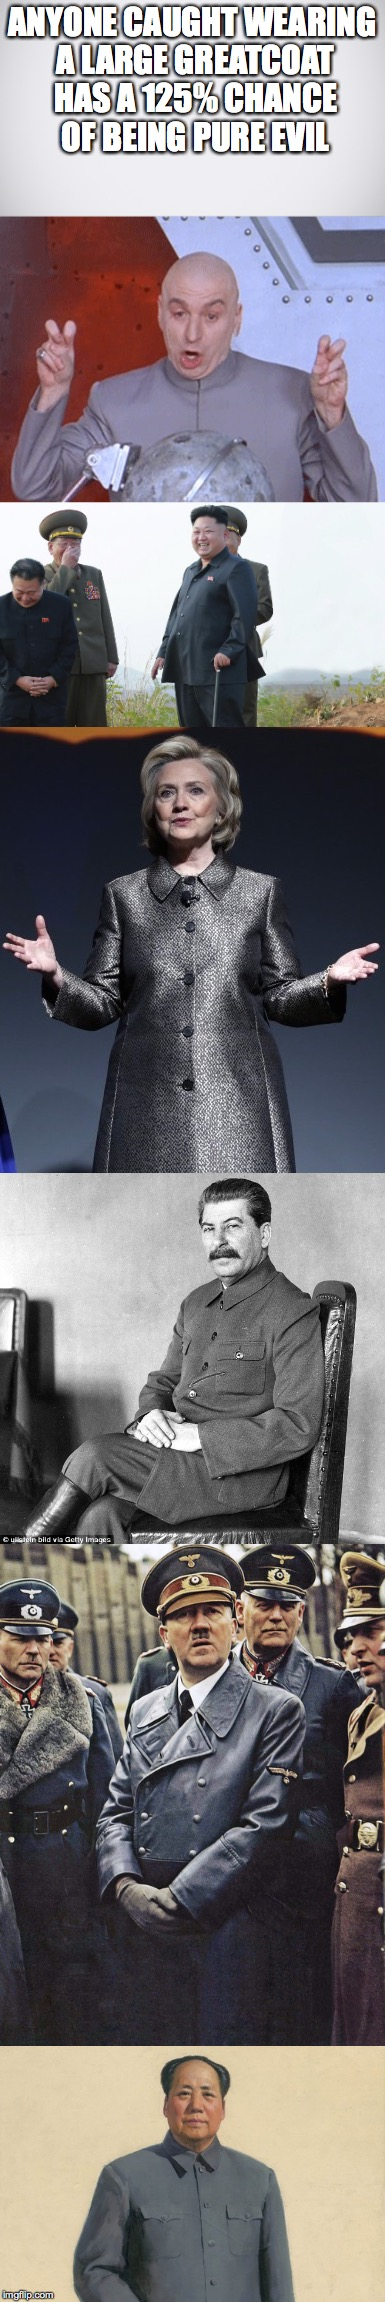 Dark forces are at work: | ANYONE CAUGHT WEARING A LARGE GREATCOAT HAS A 125% CHANCE OF BEING PURE EVIL | image tagged in dr evil laser,kim jong un,hillary clinton,stalin,hitler,memes | made w/ Imgflip meme maker